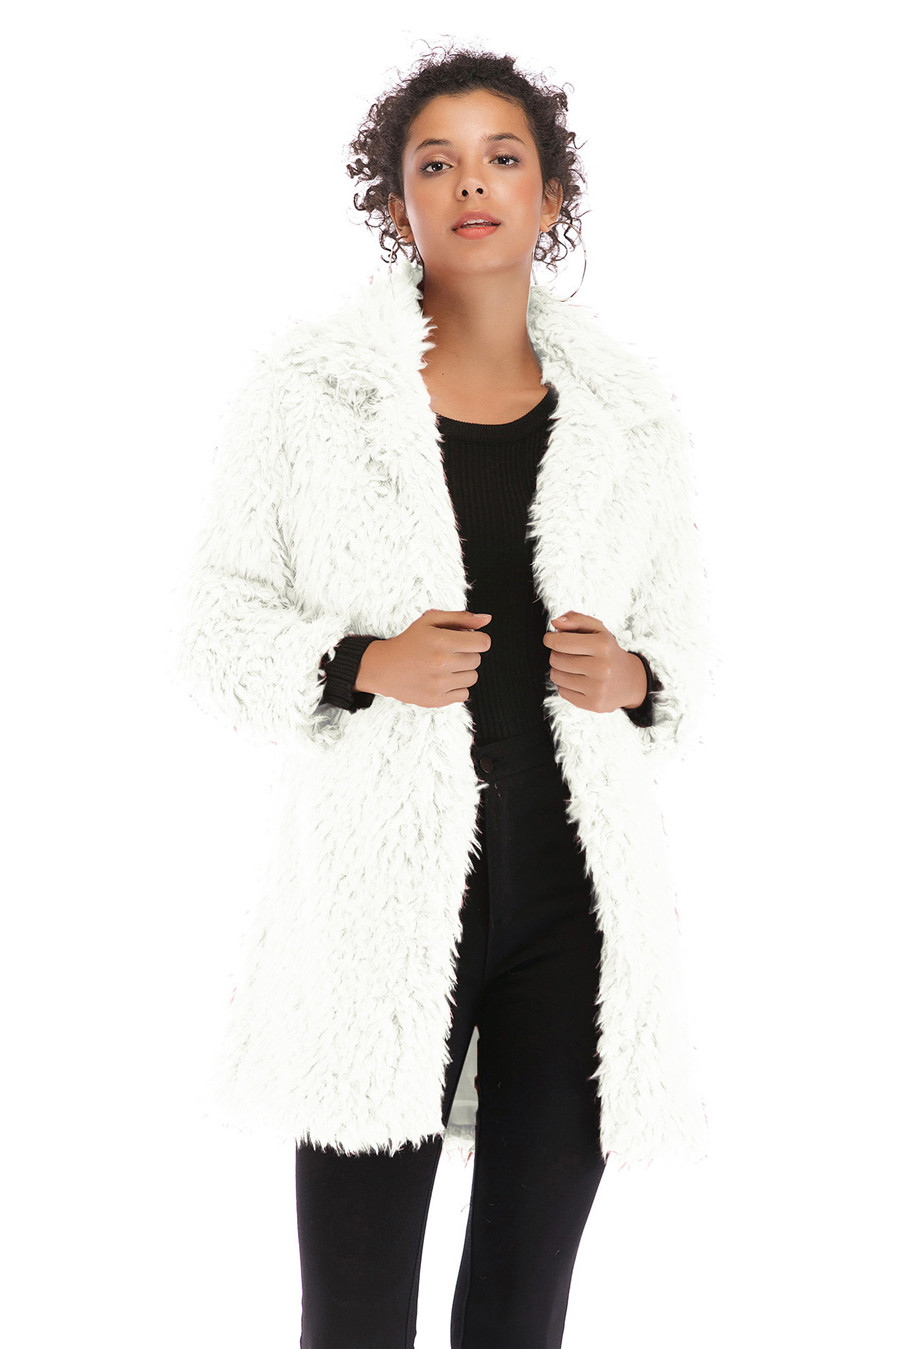 Gladiolus 2018 Women Autumn Winter Coat Turn-Down Collar Long Sleeve Covered Button Long Warm Shaggy Faux Fur Coat Women Jackets (24)